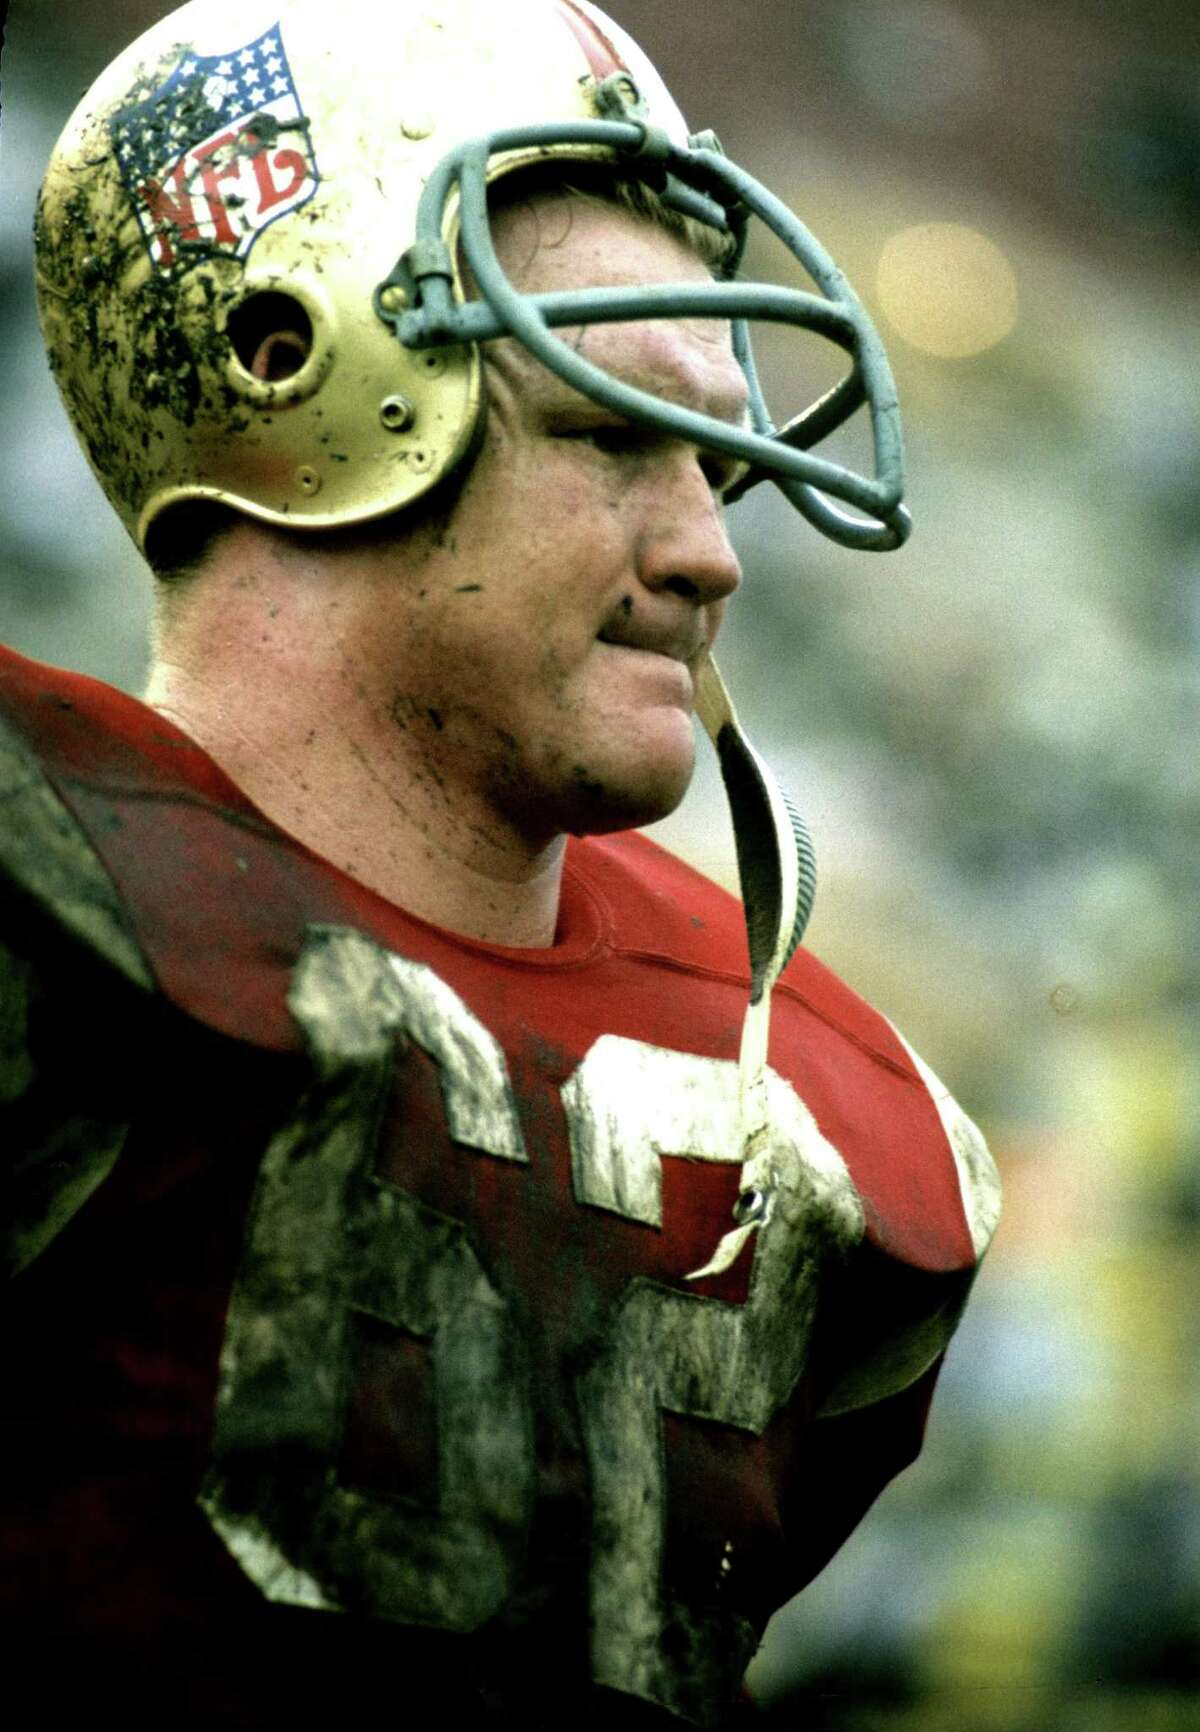 Atlanta Falcons linebacker Tommy Nobis during a 1967 Pro Bowl game where the East beat the West 20-10 on January 22, 1967 at the Los Angeles Memorial Coliseum in Los Angeles, California. 1967 NFL Pro Bowl East vs West - January 22, 1967 (AP Photo/NFL Photos)